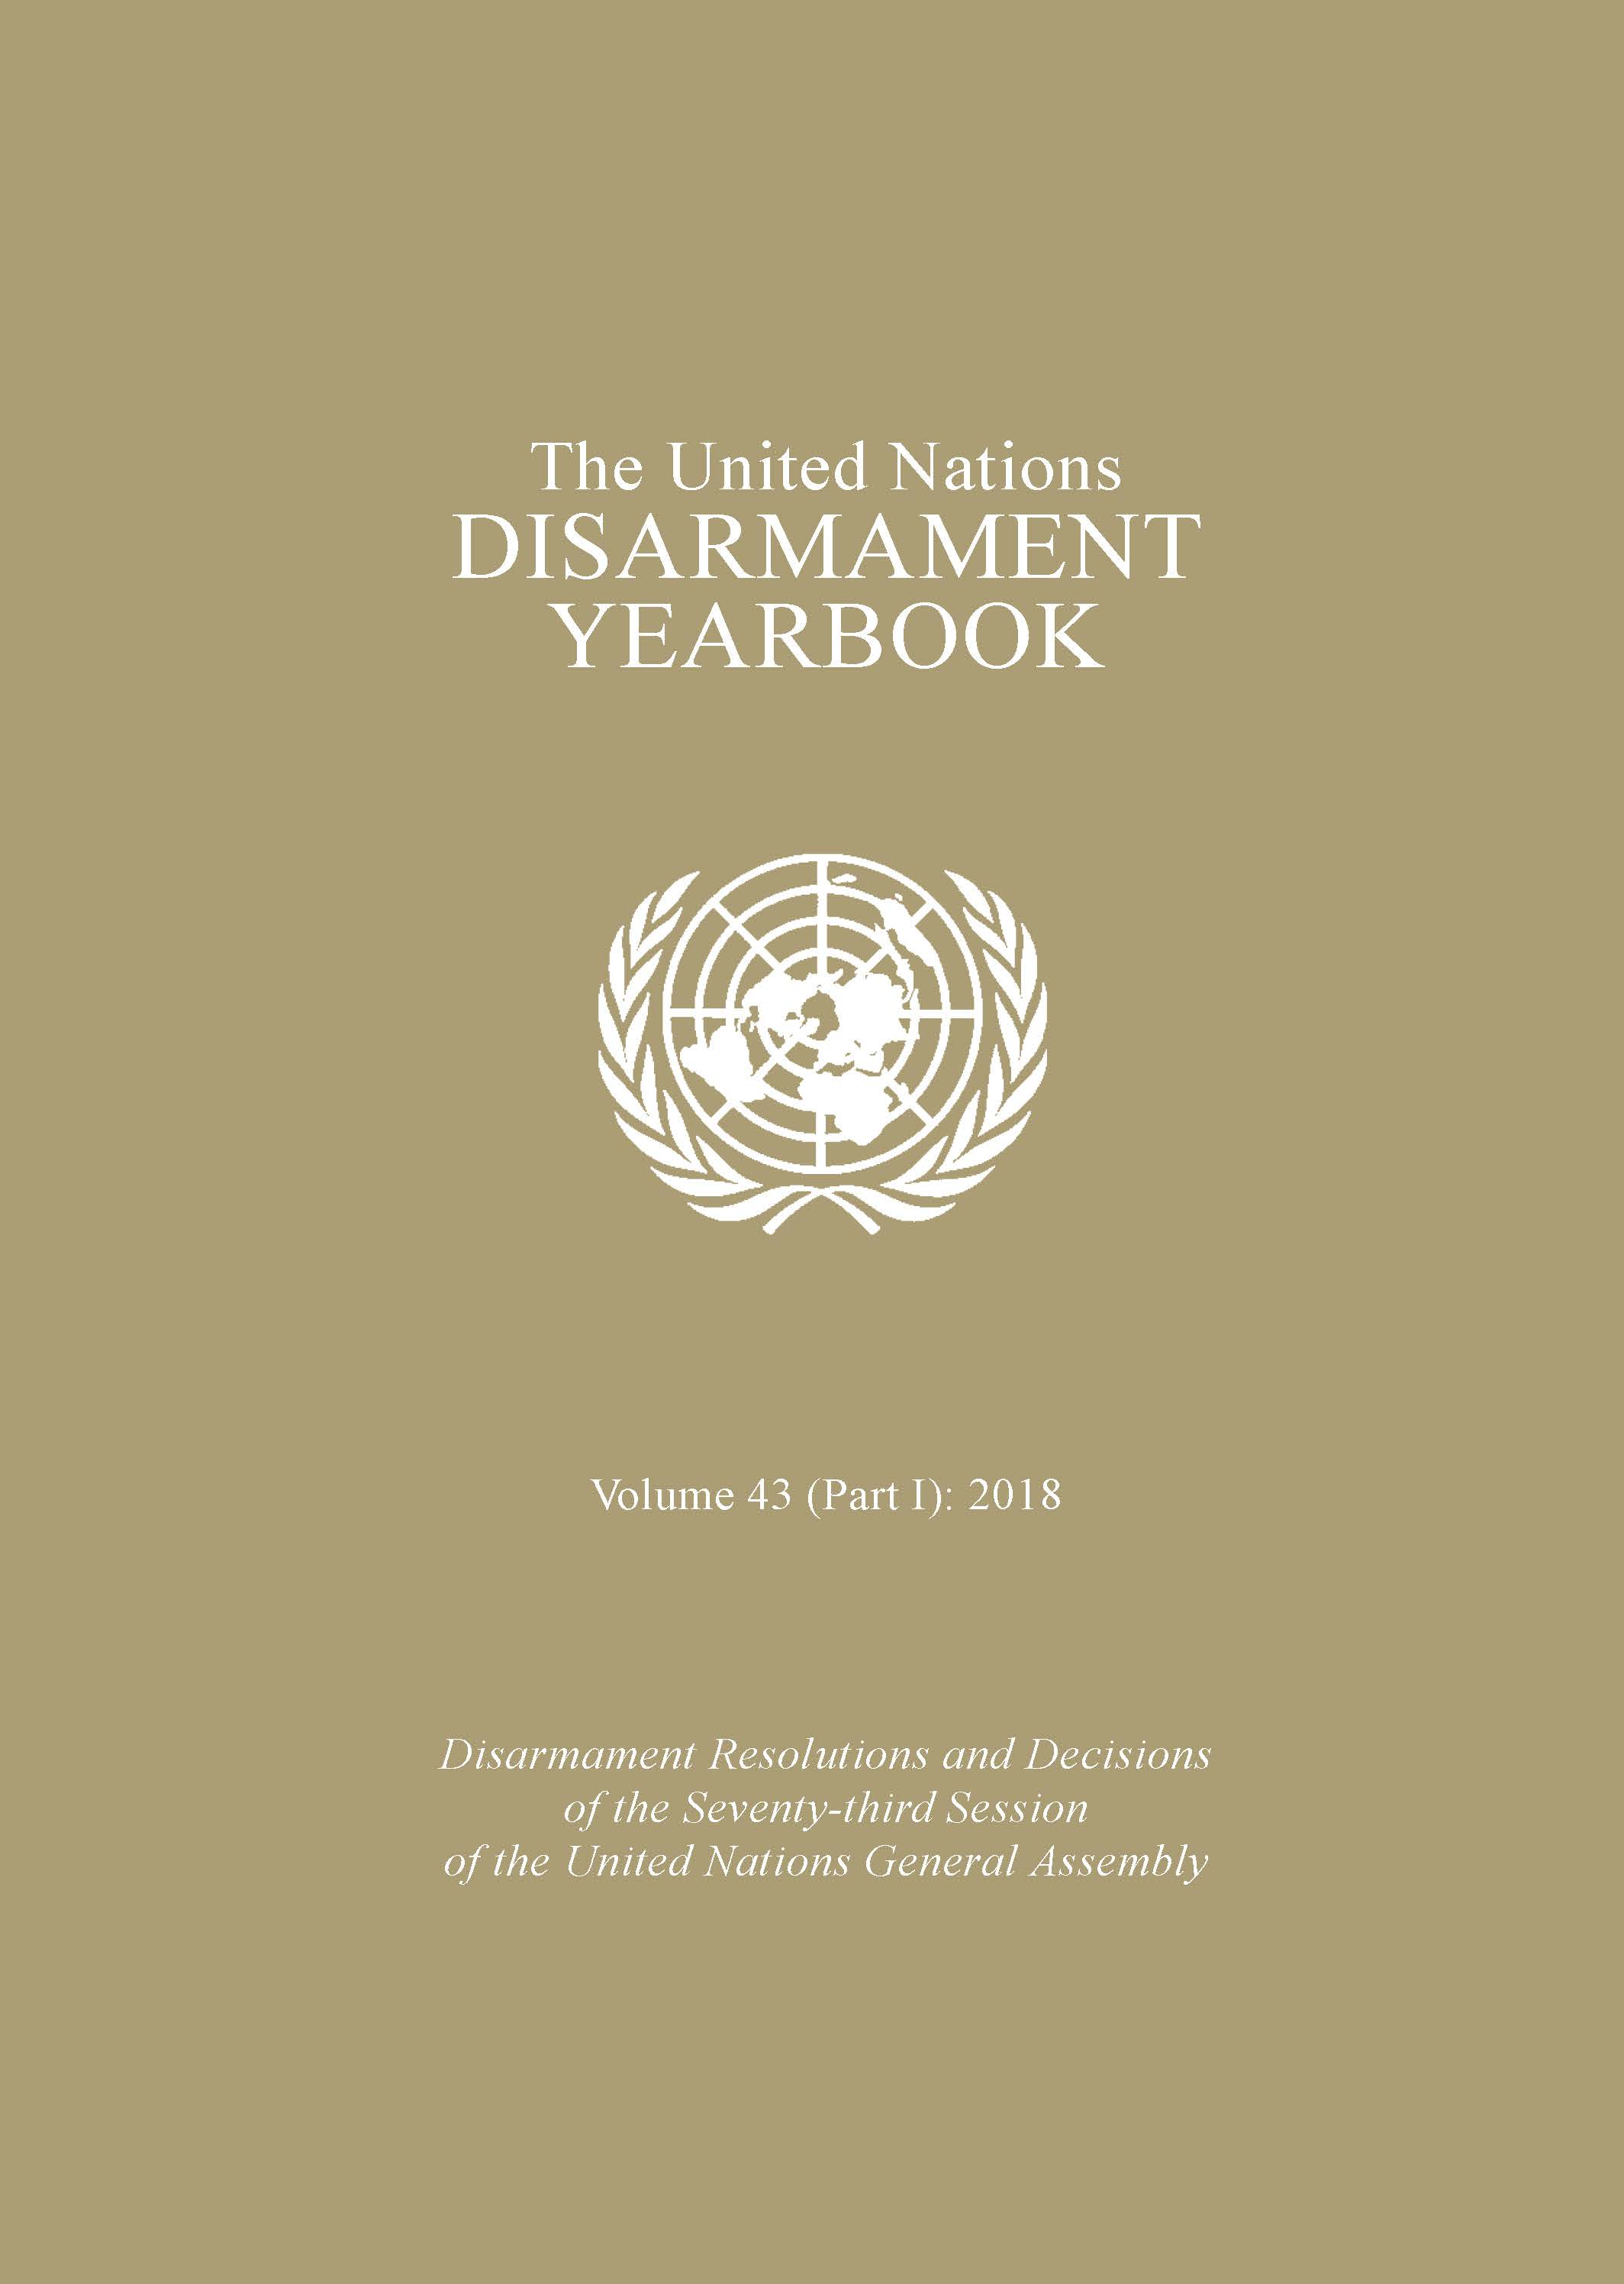 UN DISARMAMENT YRBK 2018 V43 P1